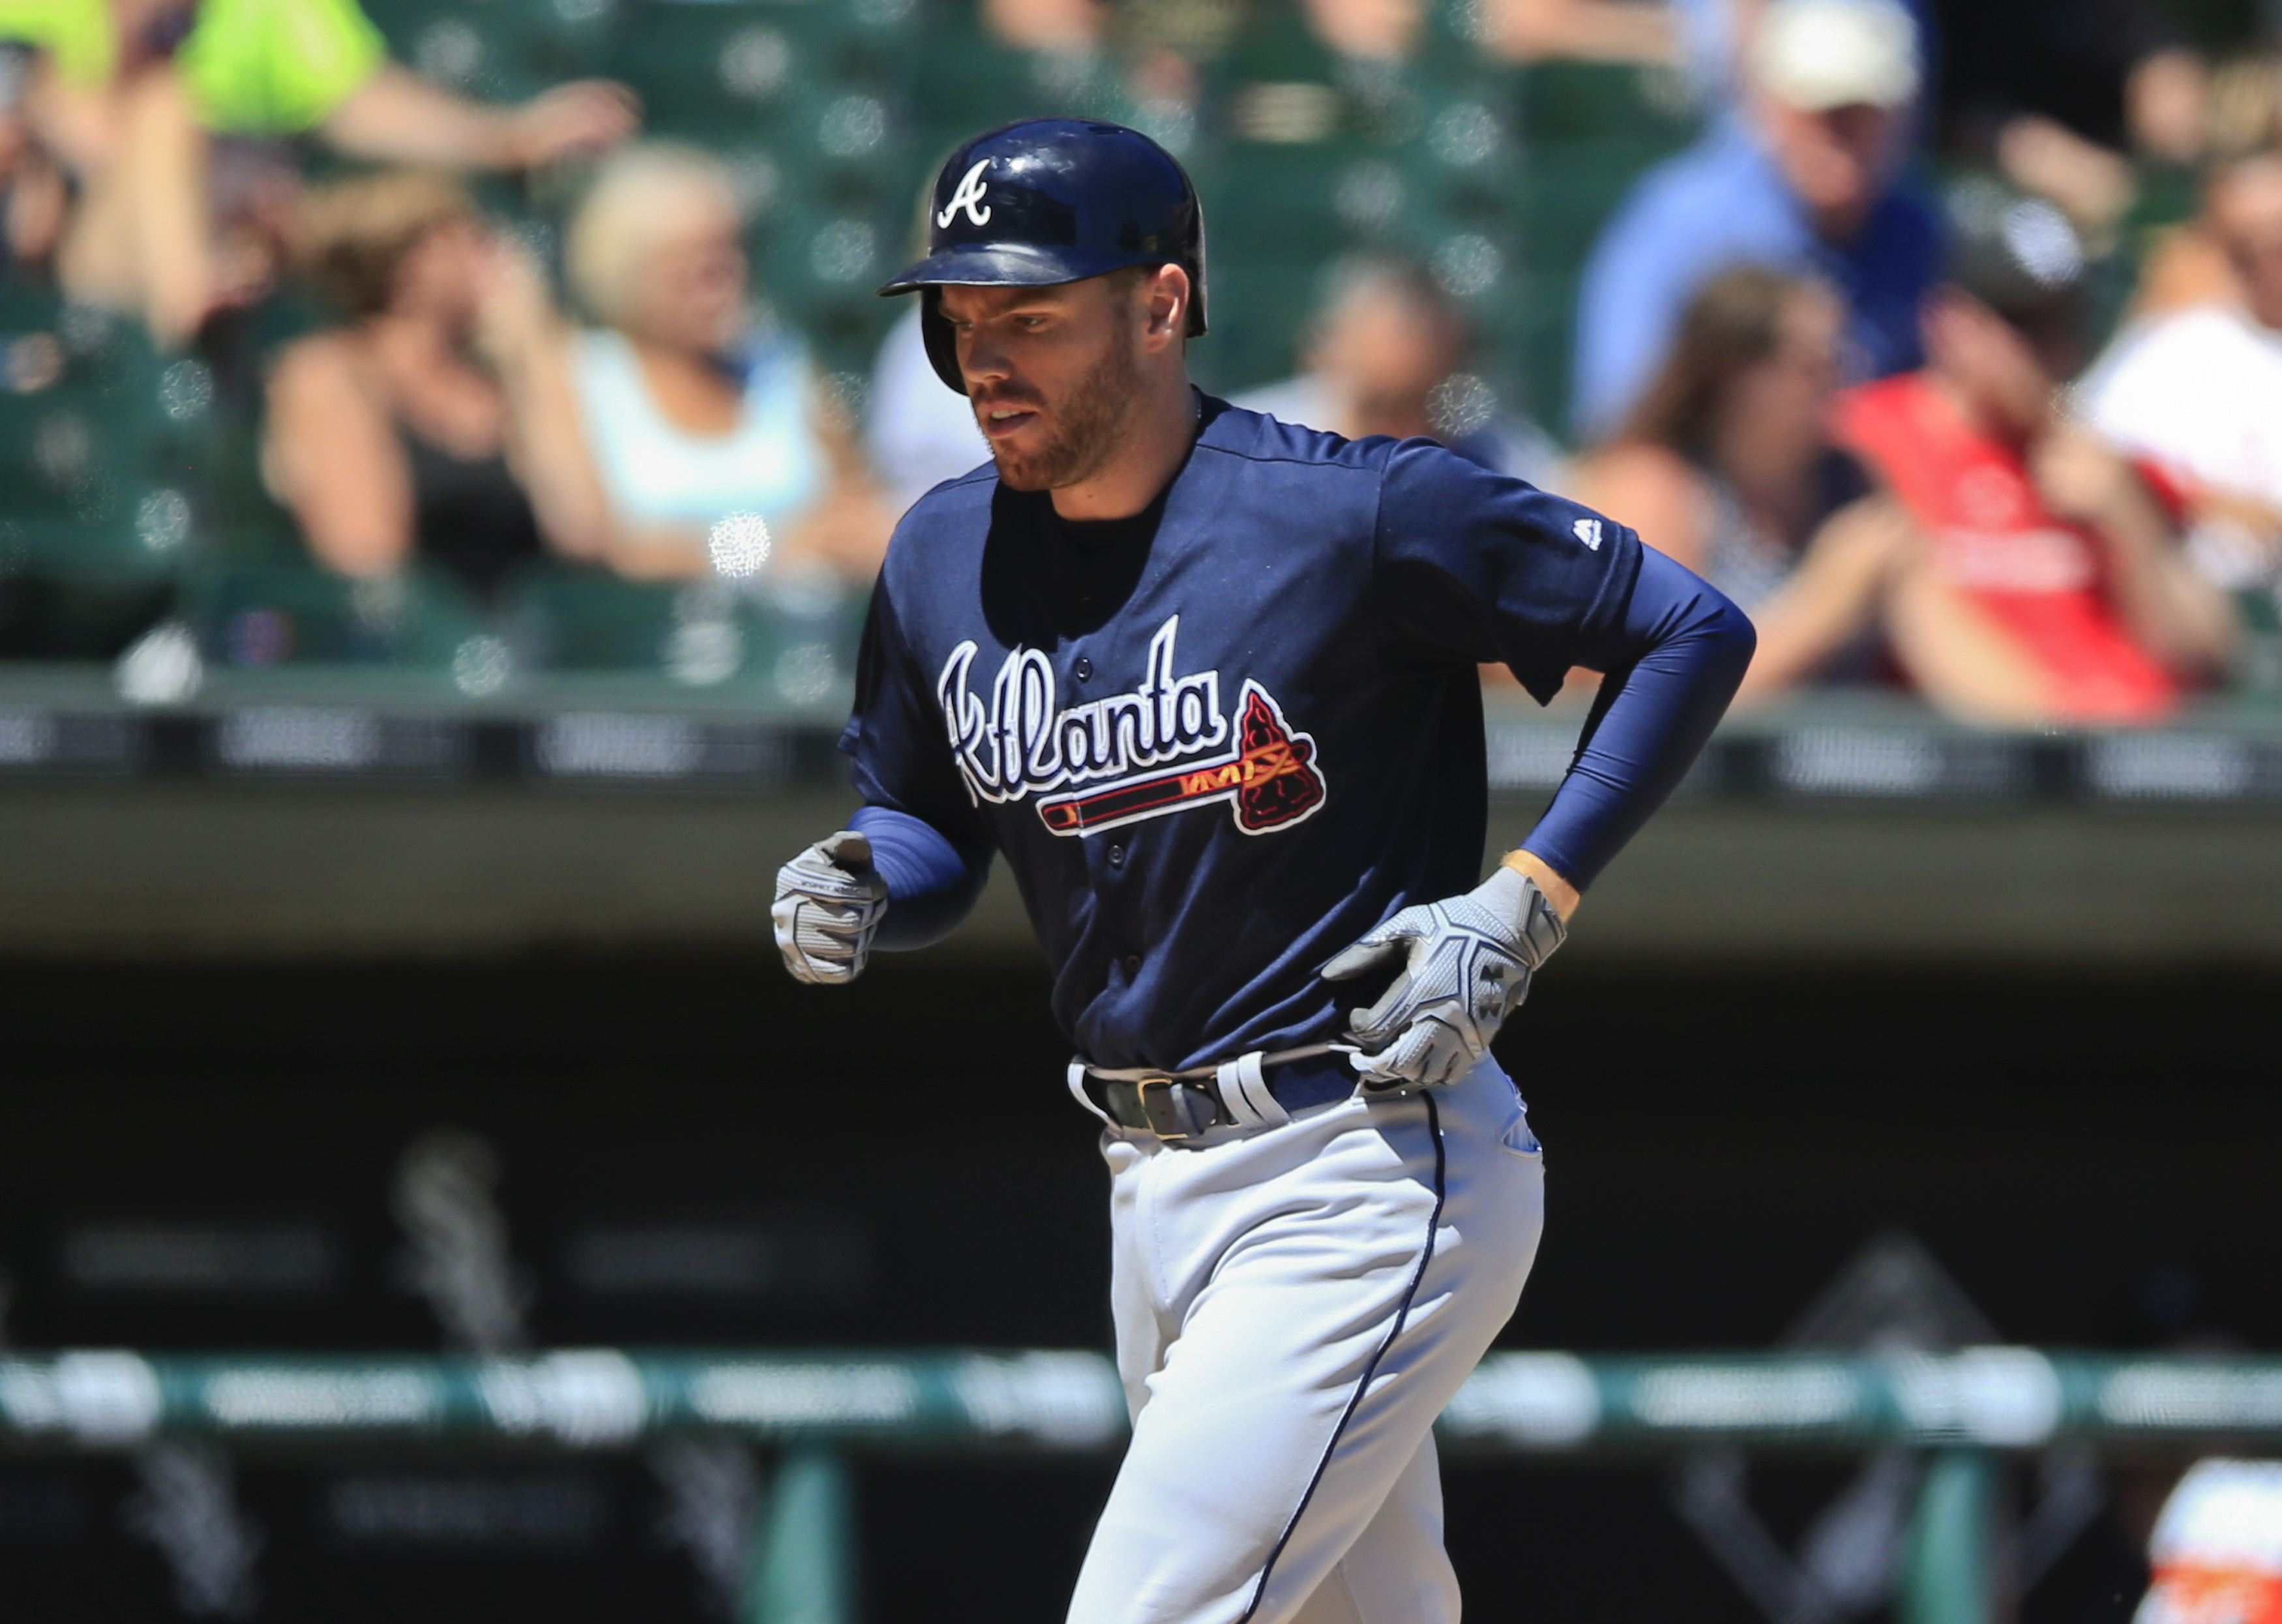 Atlanta Braves' Freddie Freeman runs the bases after hitting a solo home run during the sixth inning of a baseball game against the Chicago White Sox, Saturday, July 9, 2016, in Chicago. (AP Photo/Kamil Krzaczynski)